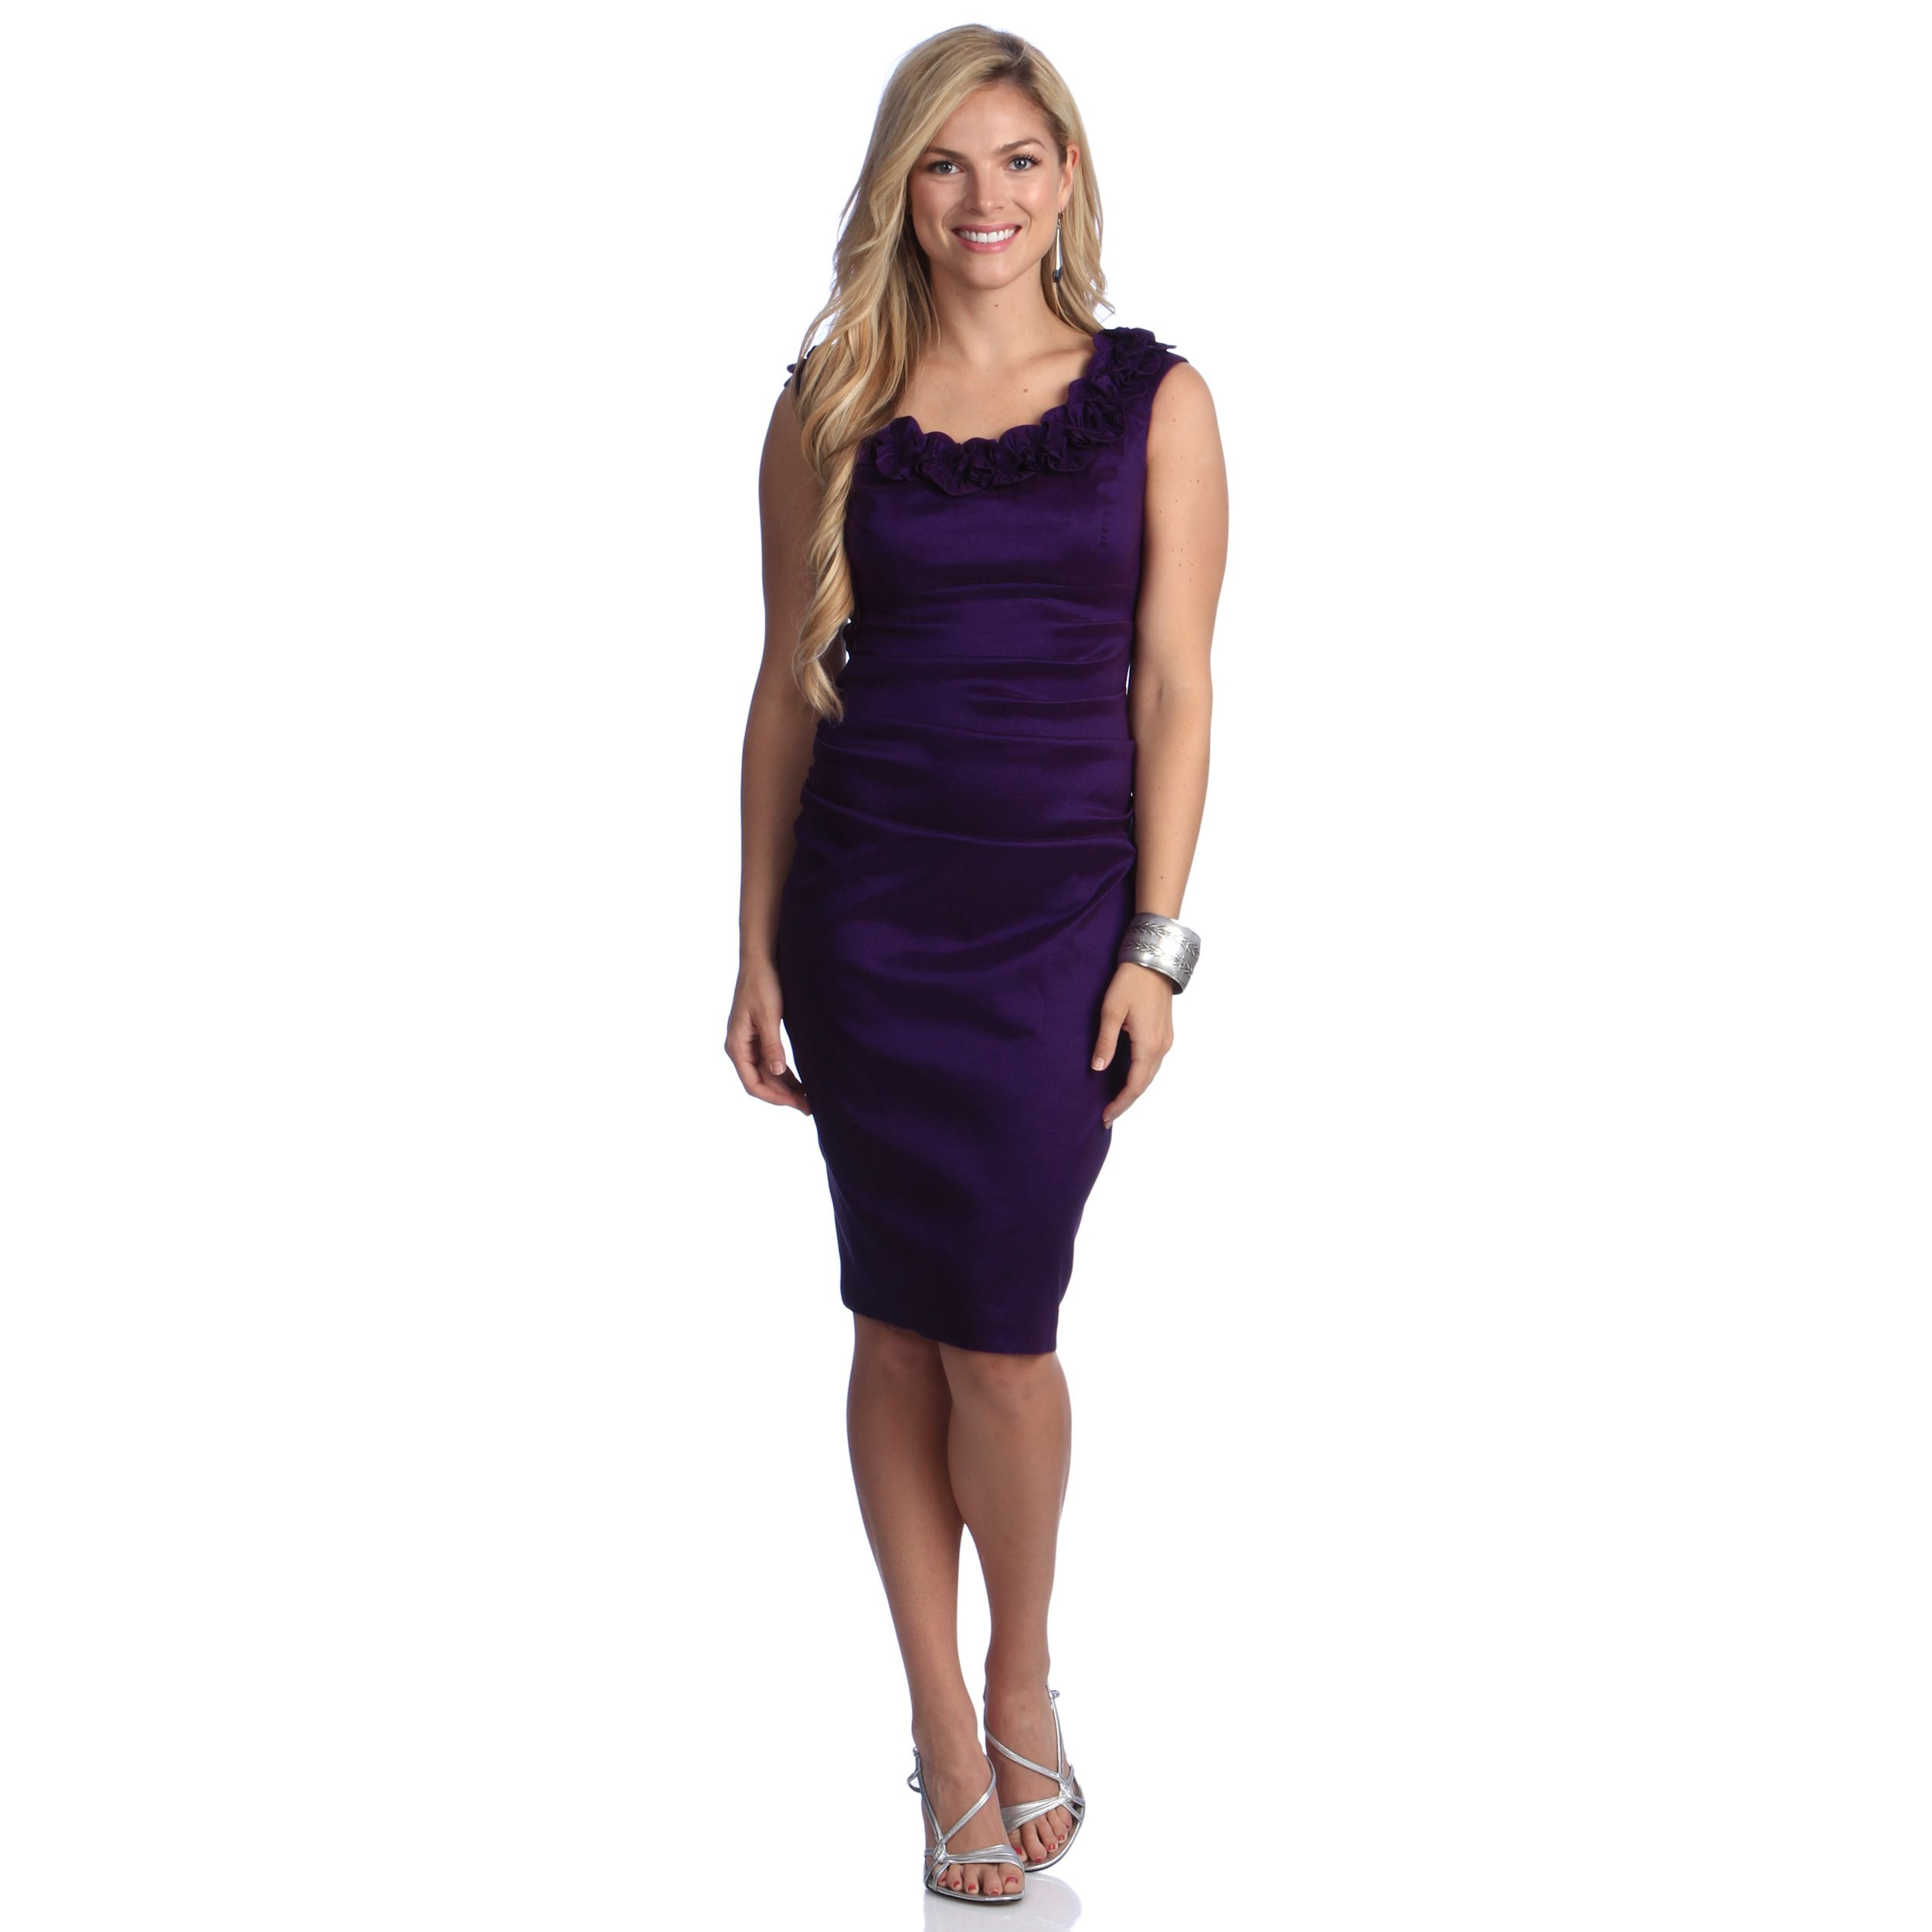 This plum london times dress is perfect for showing off your curves